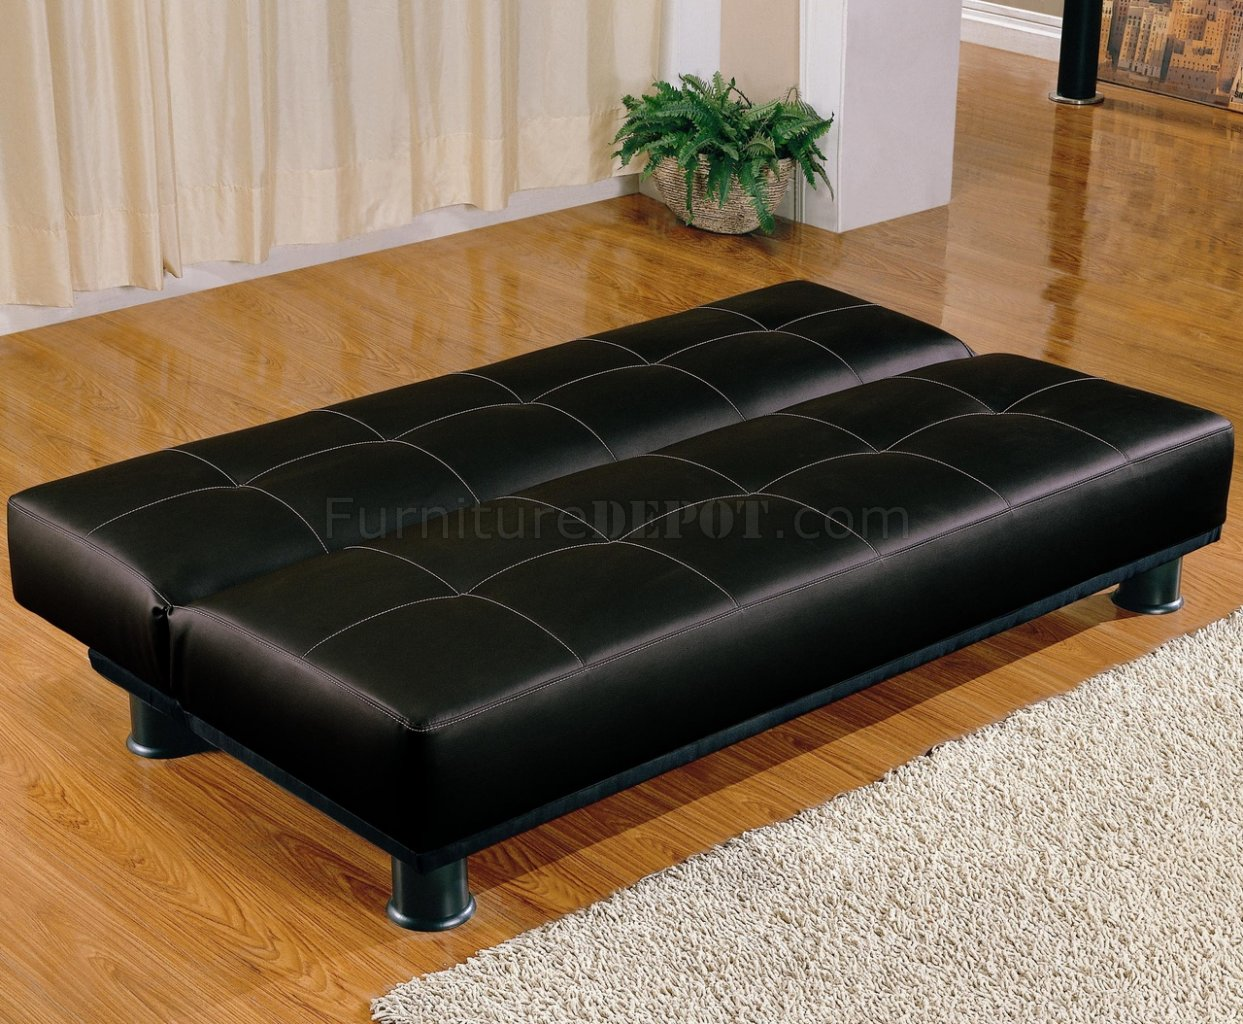 Faux Leather Modern Convertible Sofa Bed 300163 Black